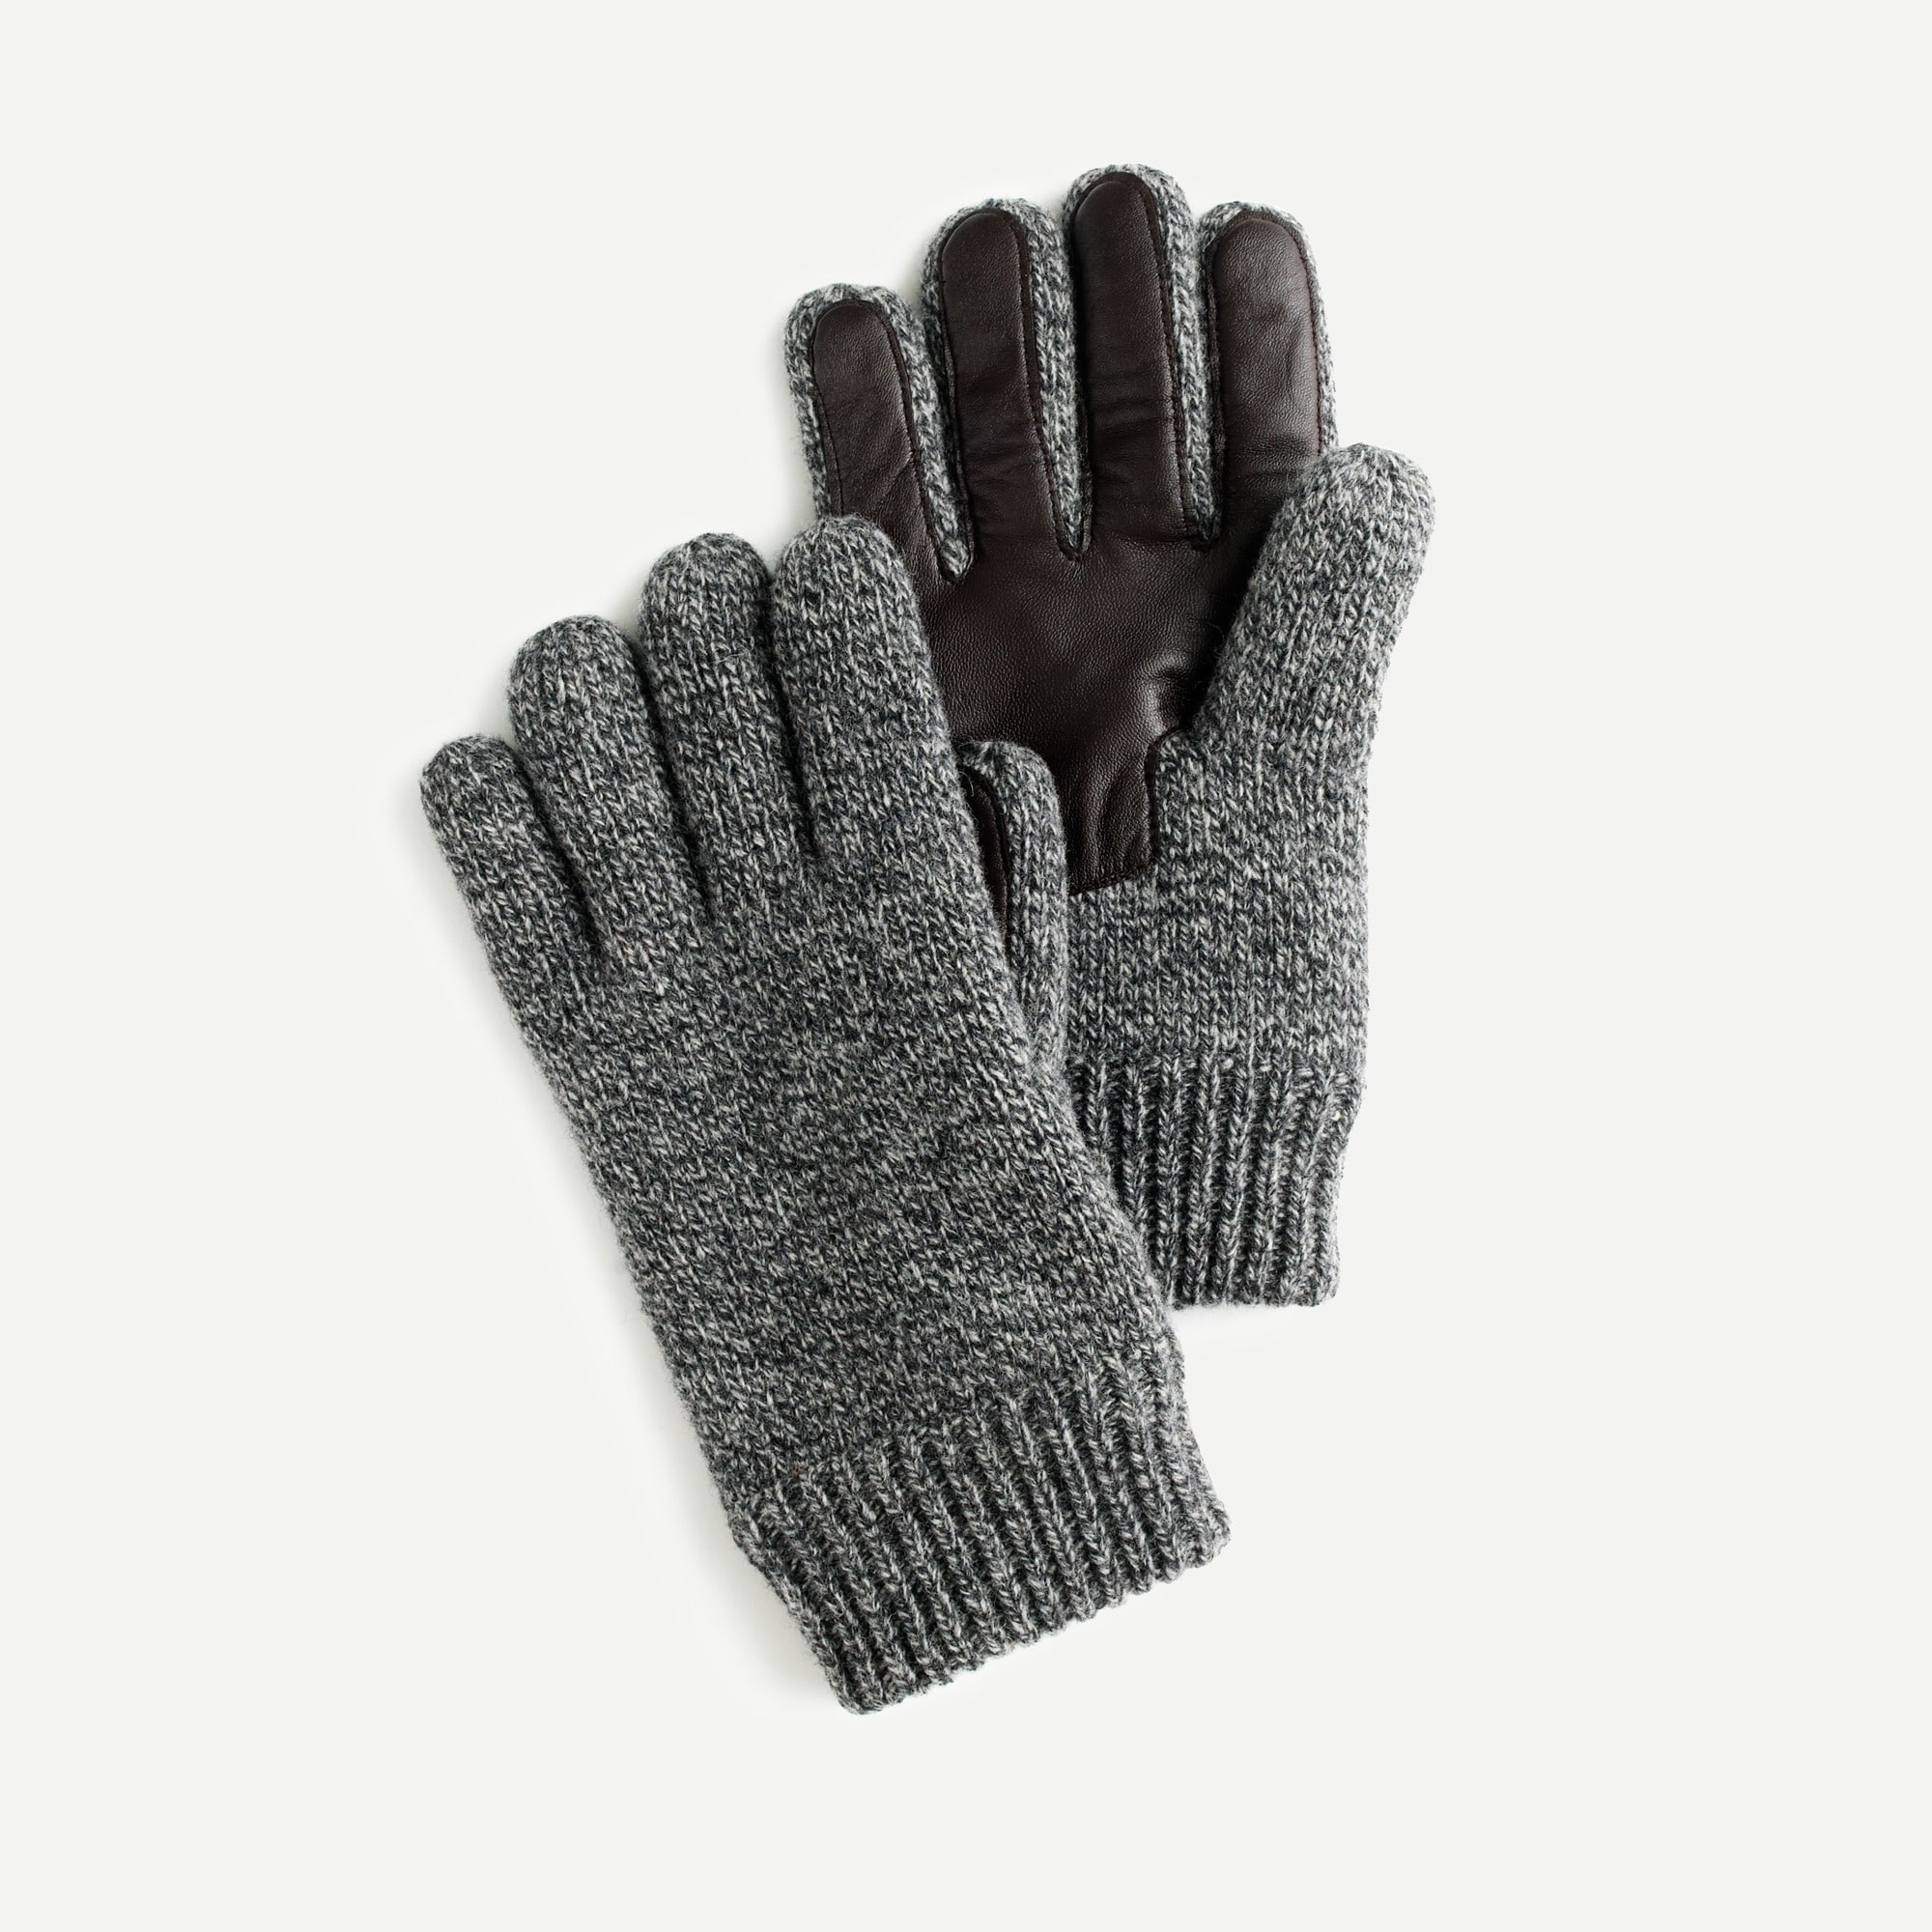 Wool smartphone gloves